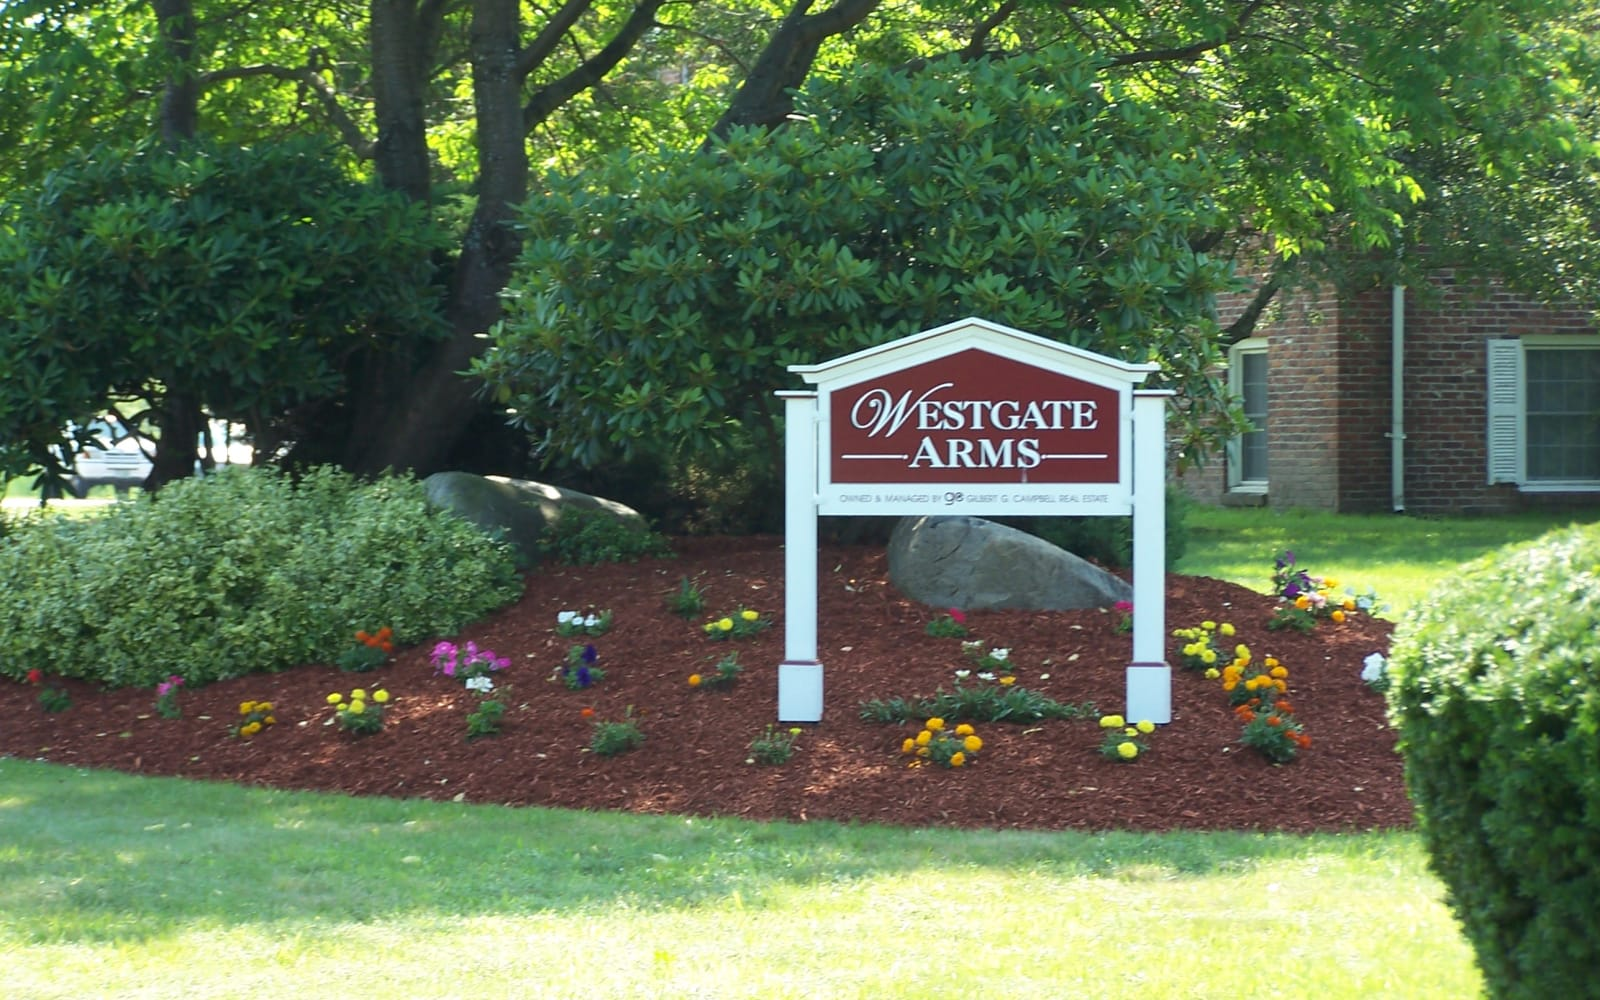 The front entrance sign at Westgate Arms Apartments in Salem, New Hampshire